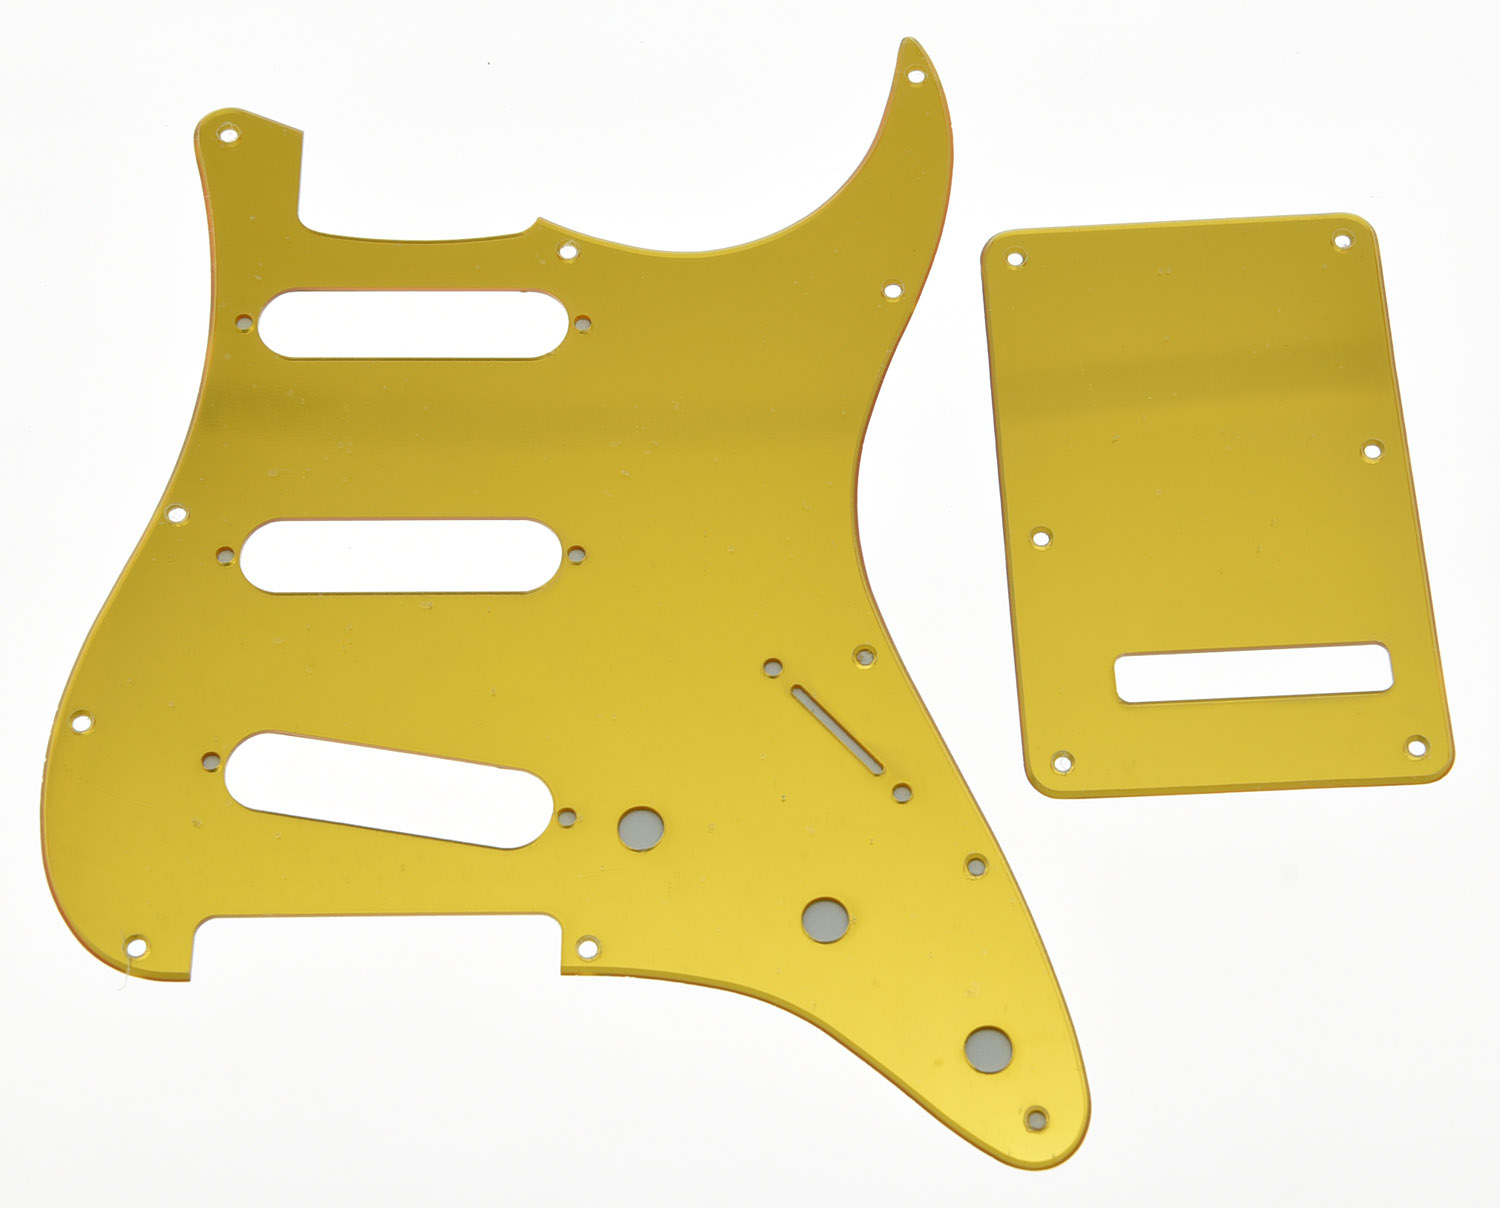 KAISH Gold Mirror SSS ST Style Guitar Pickguard Back Plate Screws fits USA ST